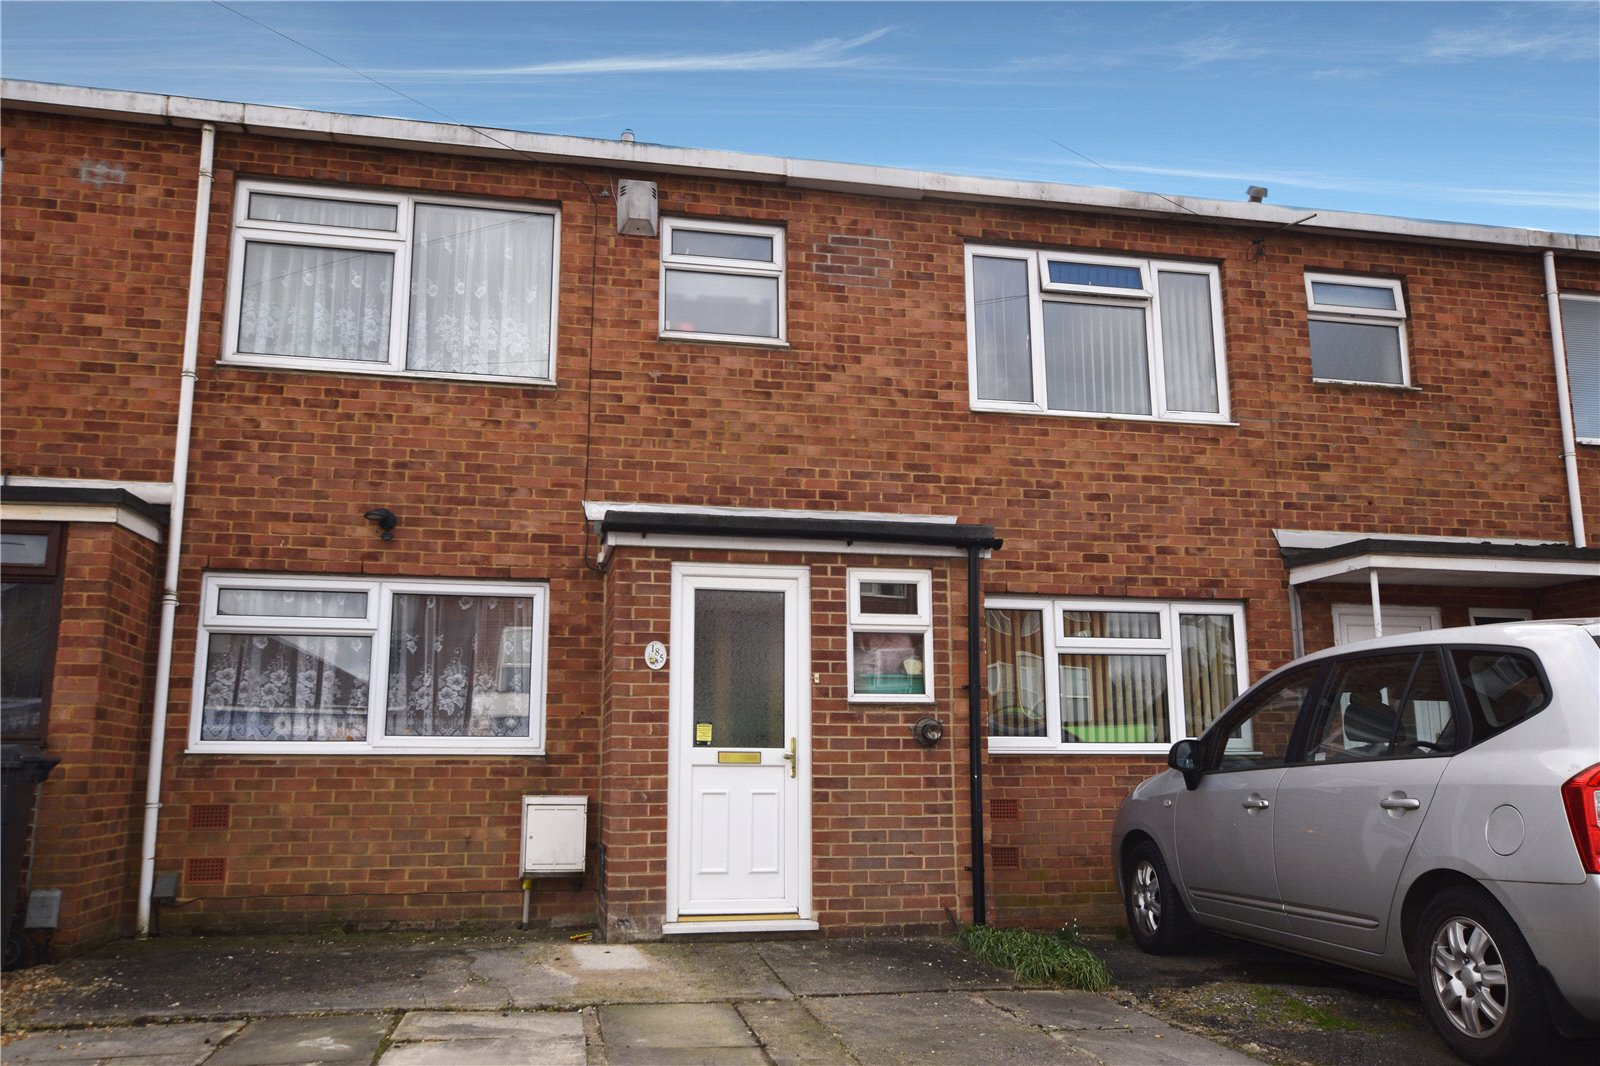 3 Bedrooms Terraced House for sale in Whitley Wood Road, Reading, Berkshire, RG2